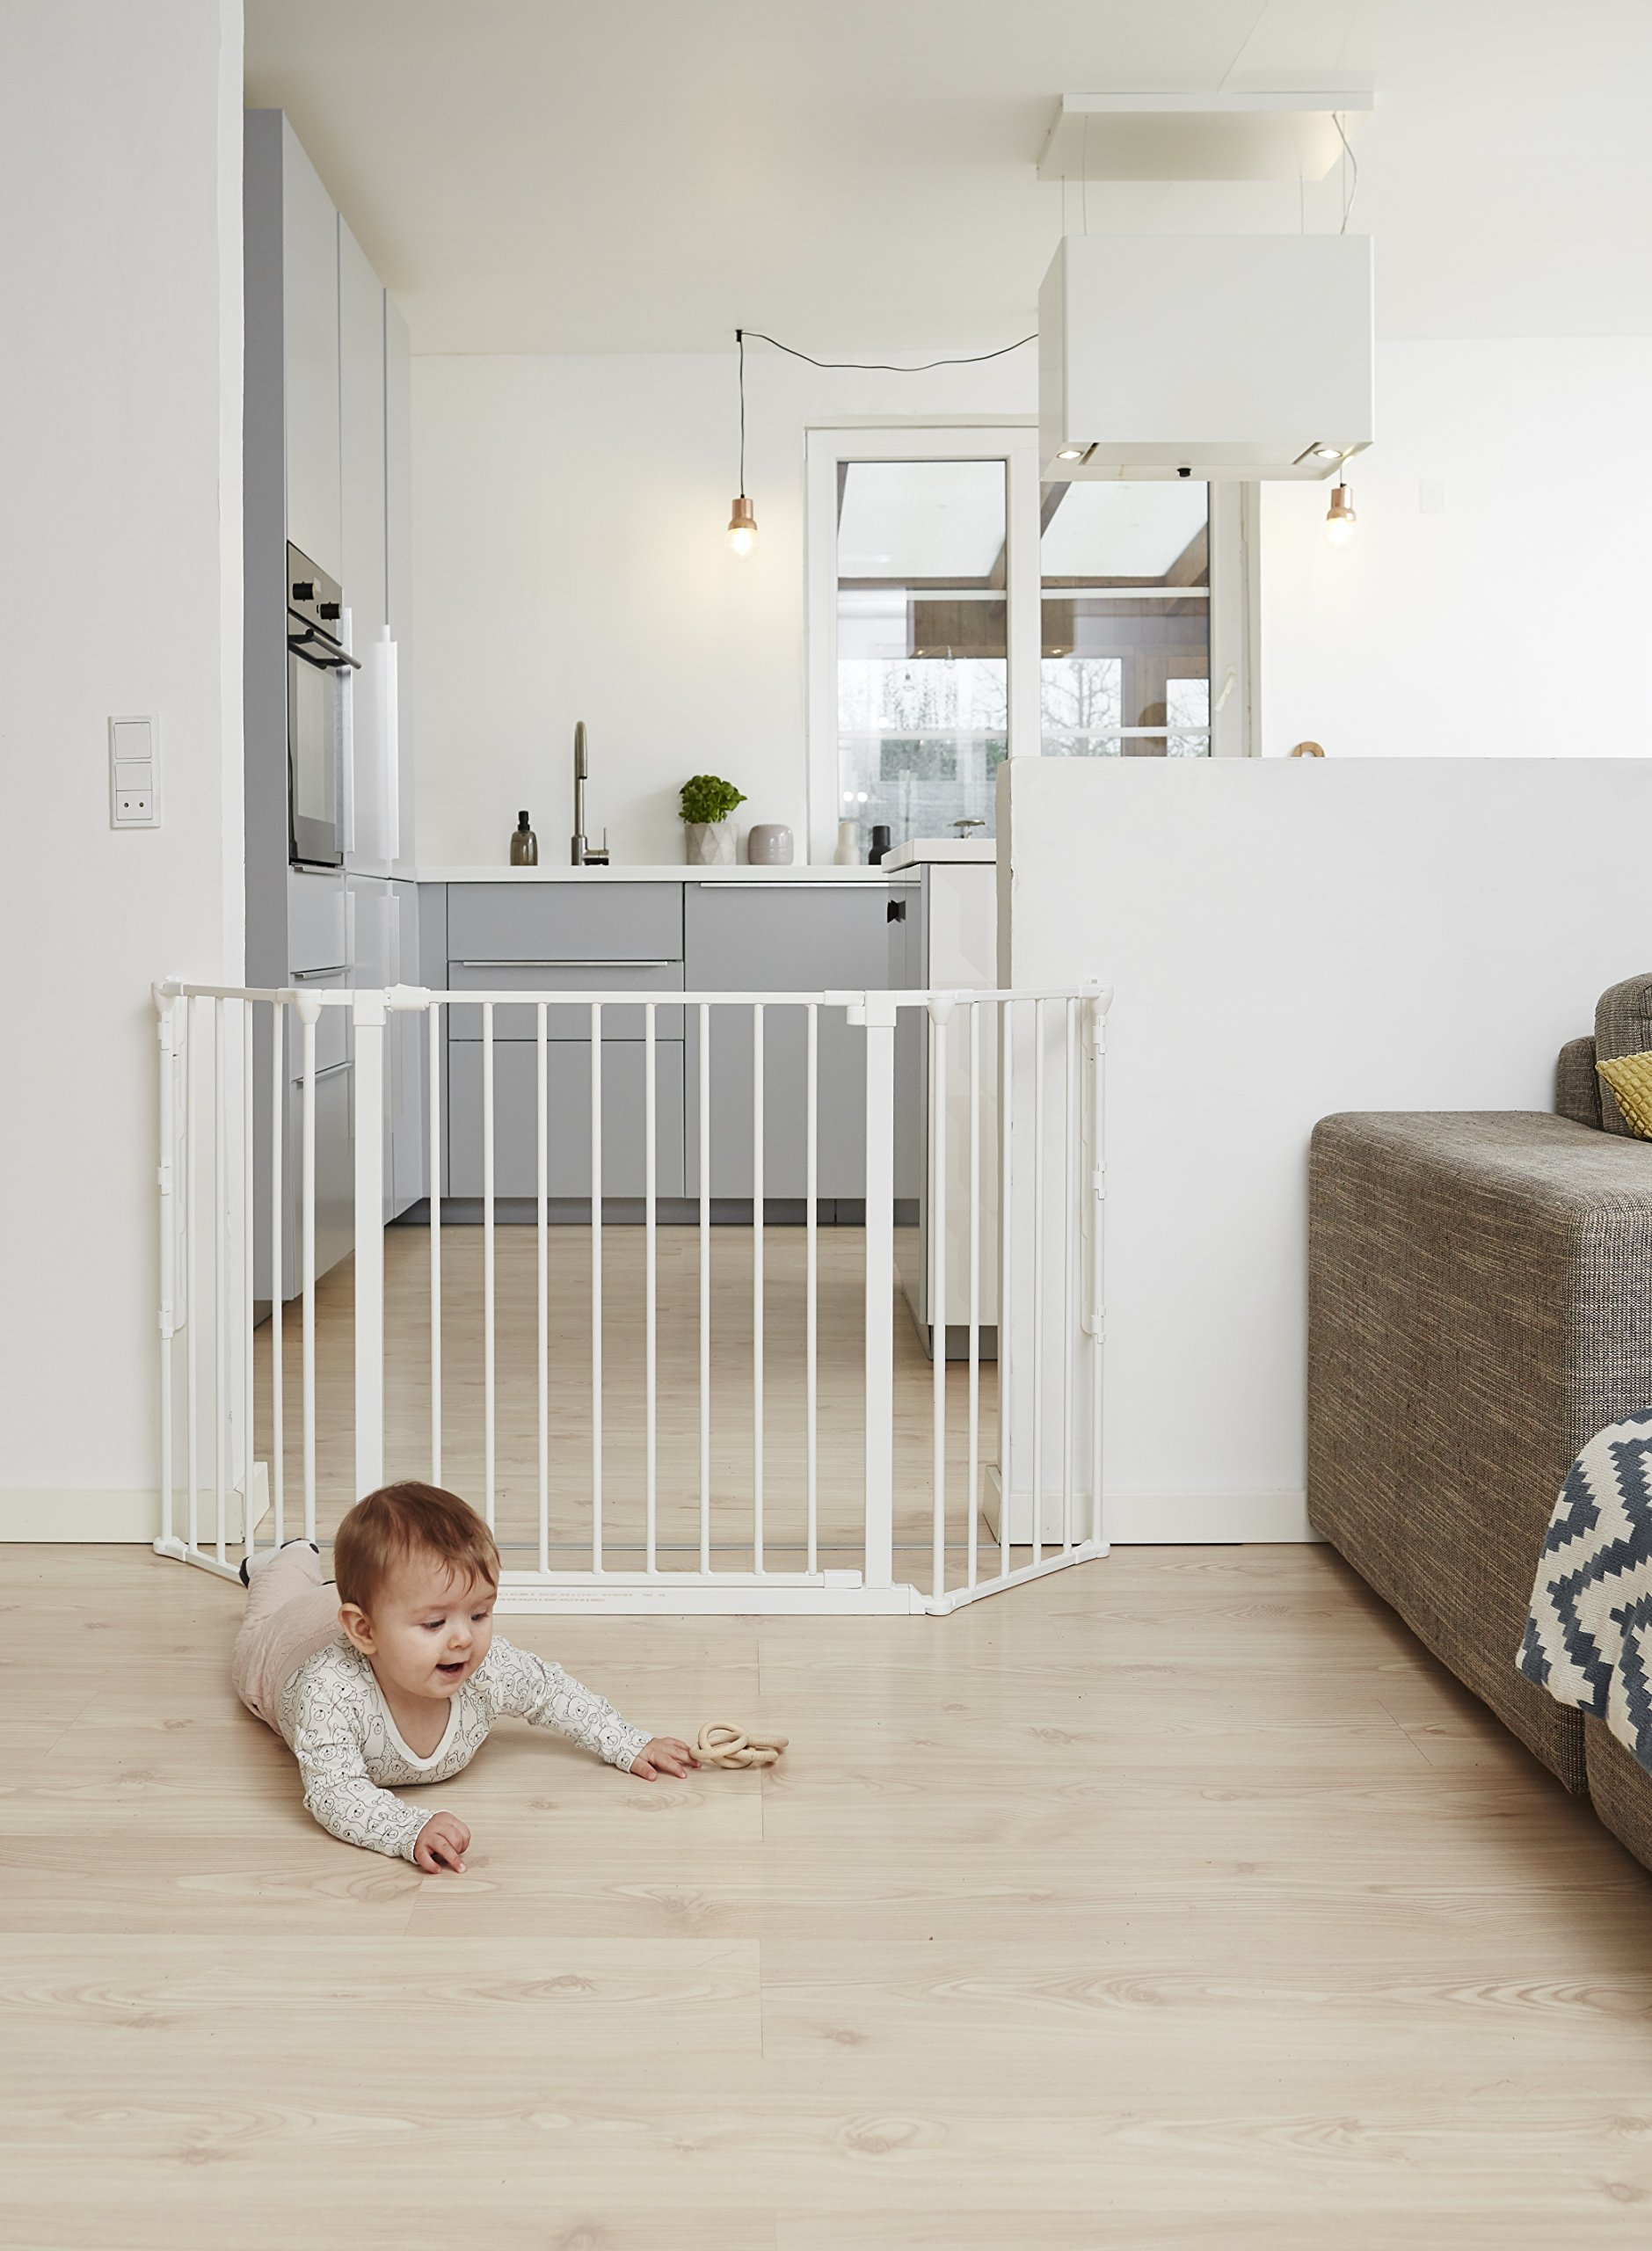 BabyDan Configure (Medium 90-146cm, White)  Only configure system fulfilling newest European safety standard Multi purpose room divider and gate for wider openings Flexible and easy to fit 2